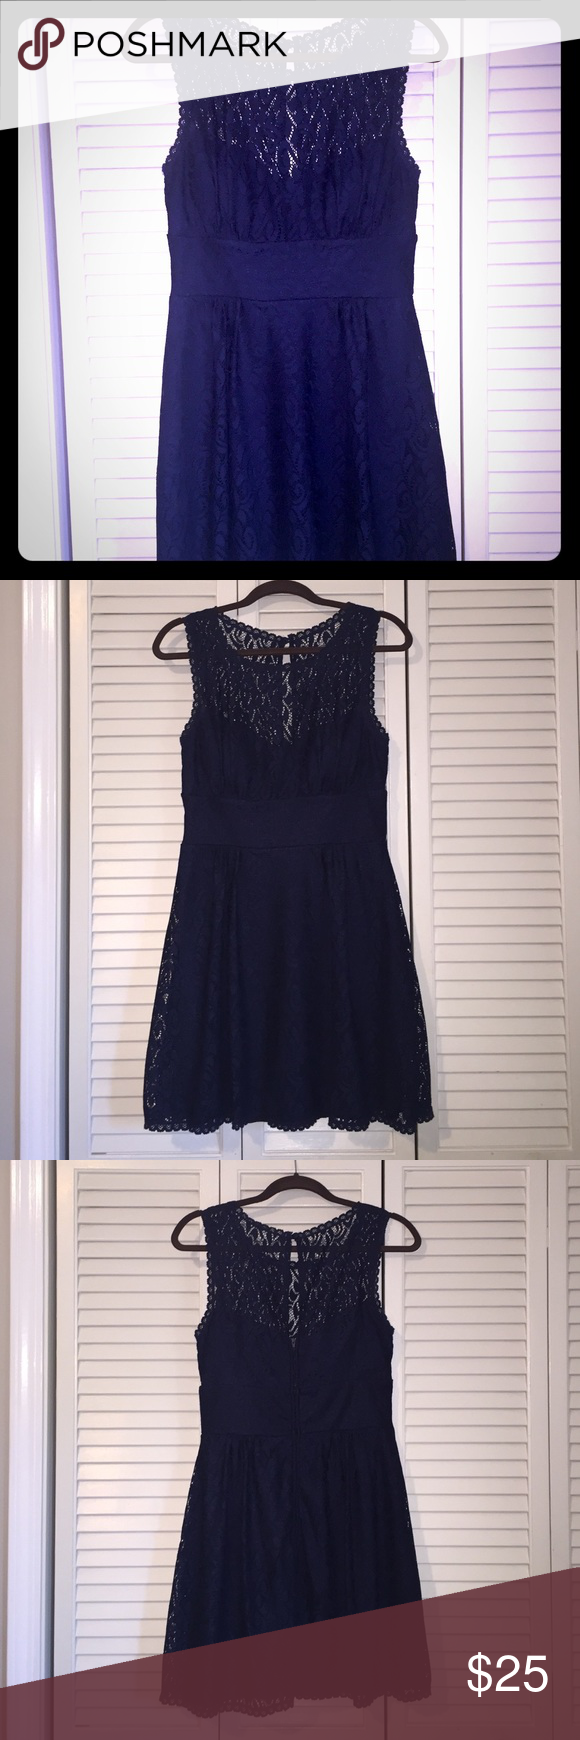 B darlin black lace dress  B Darlin Lace Dress Only worn once and washed per care instructions